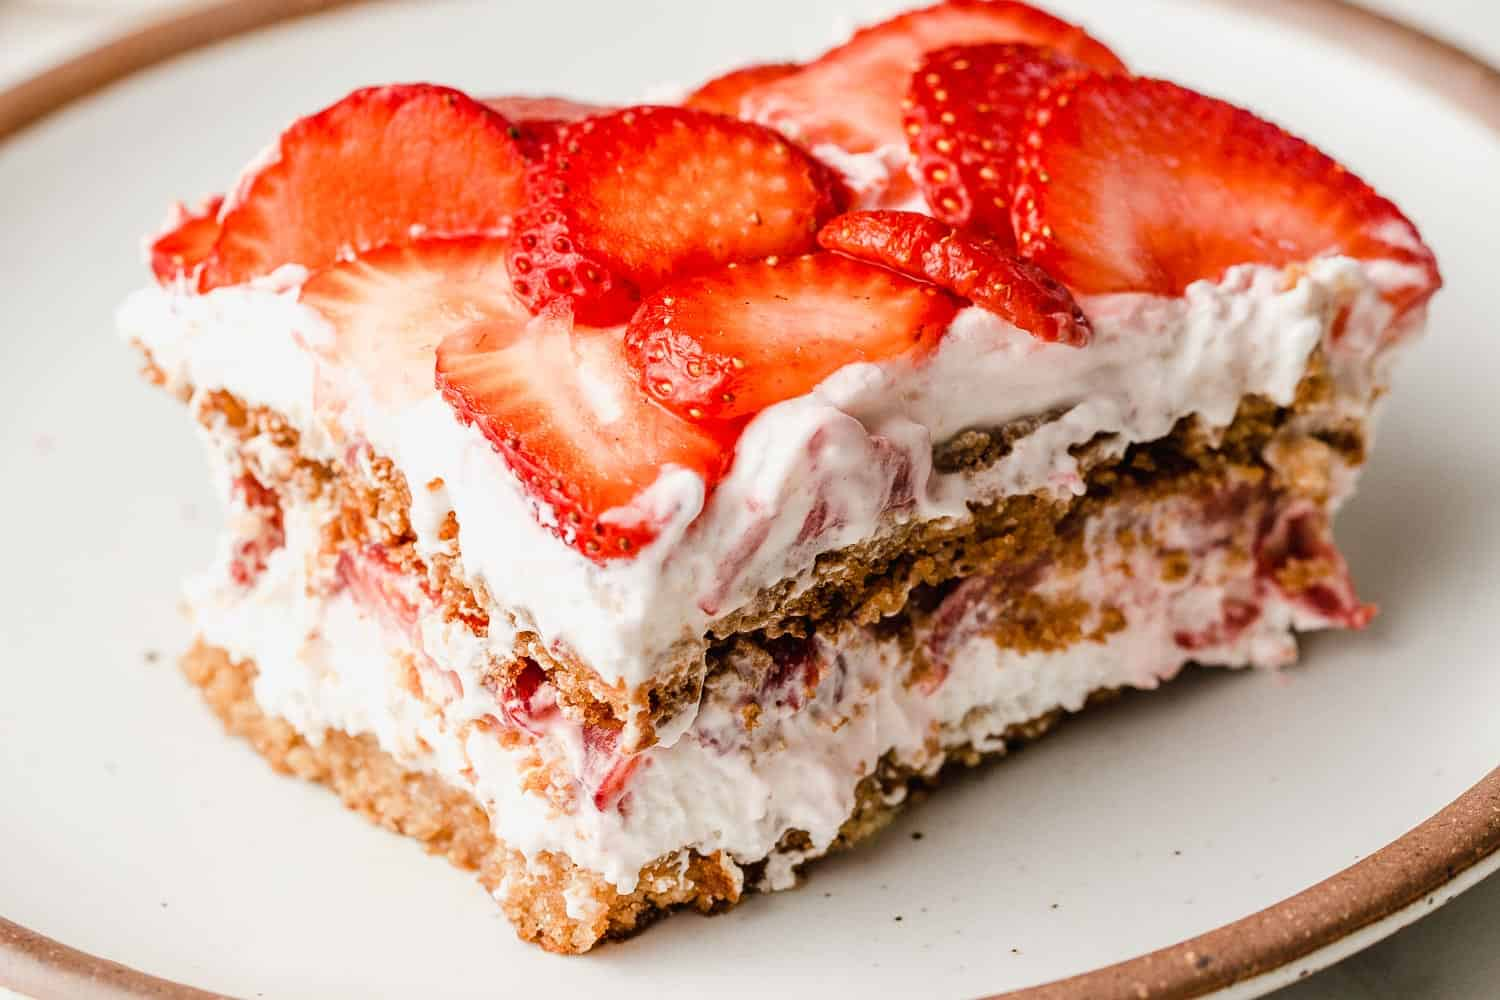 A slice of strawberry icebox cake on a plate.